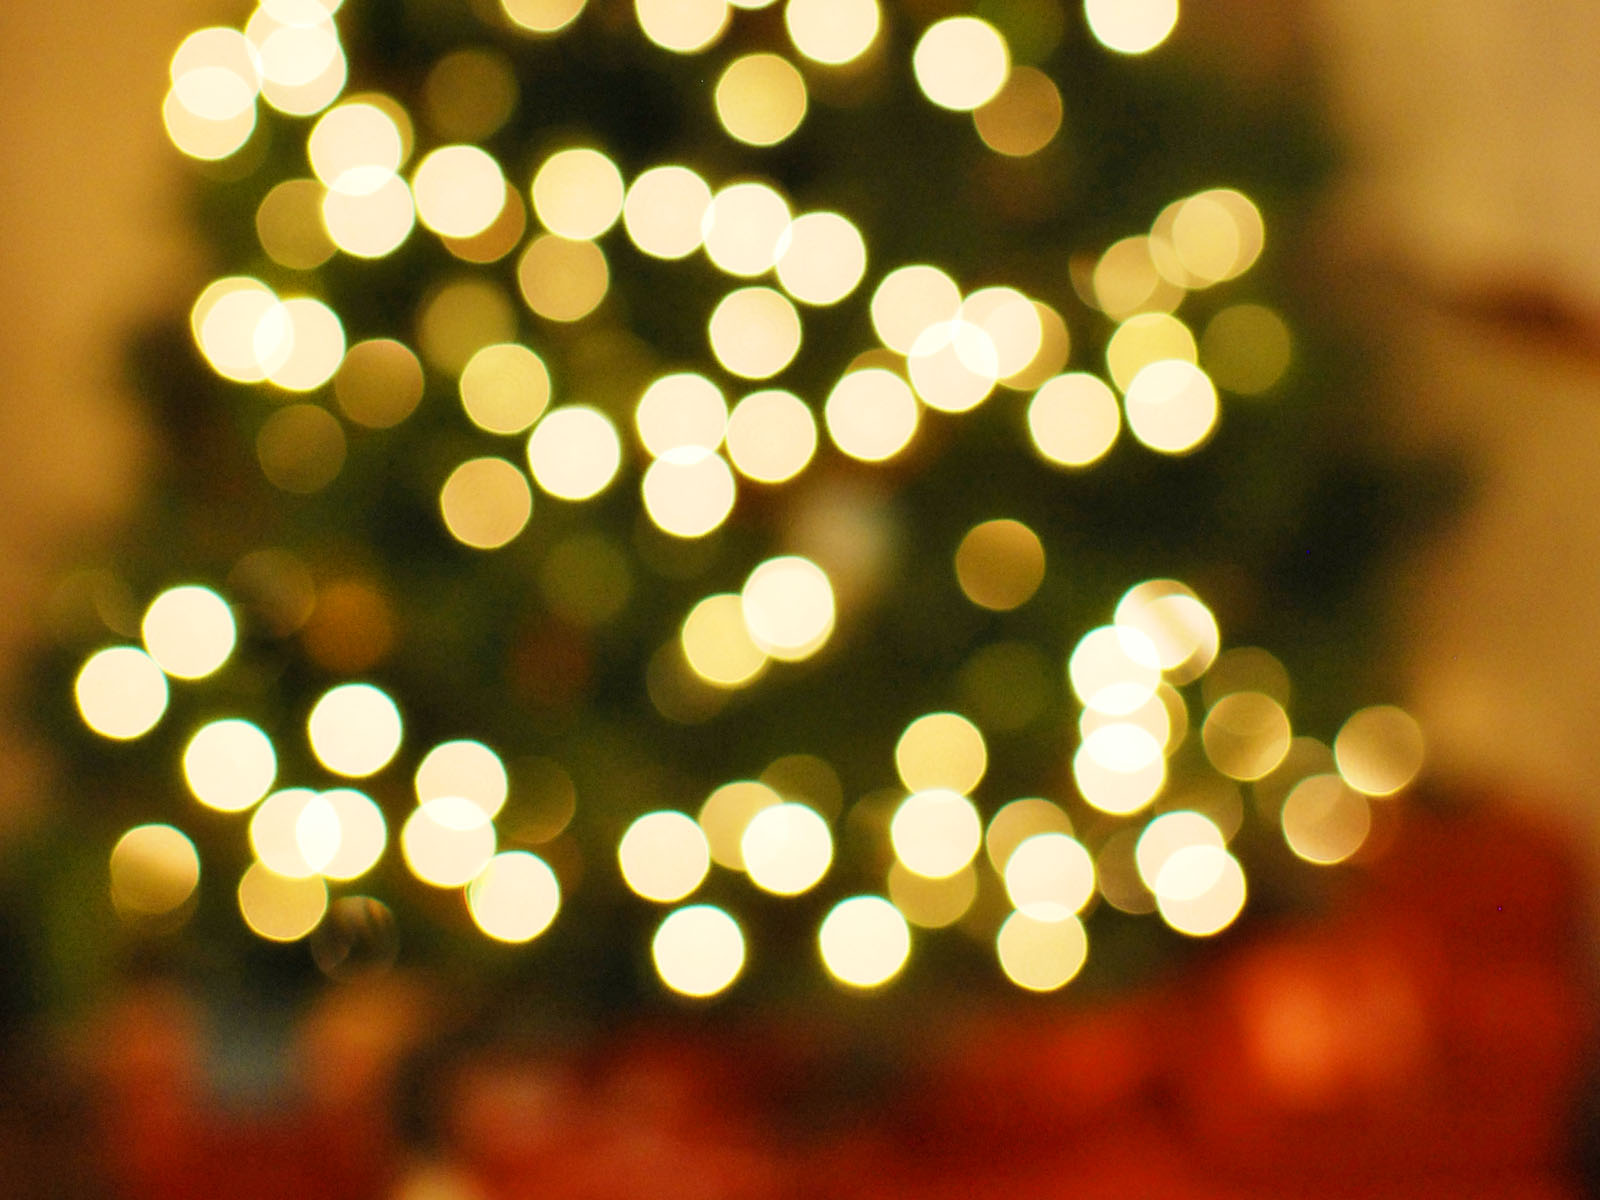 Christmas Tree Bokeh HD Wallpaper, Background Images